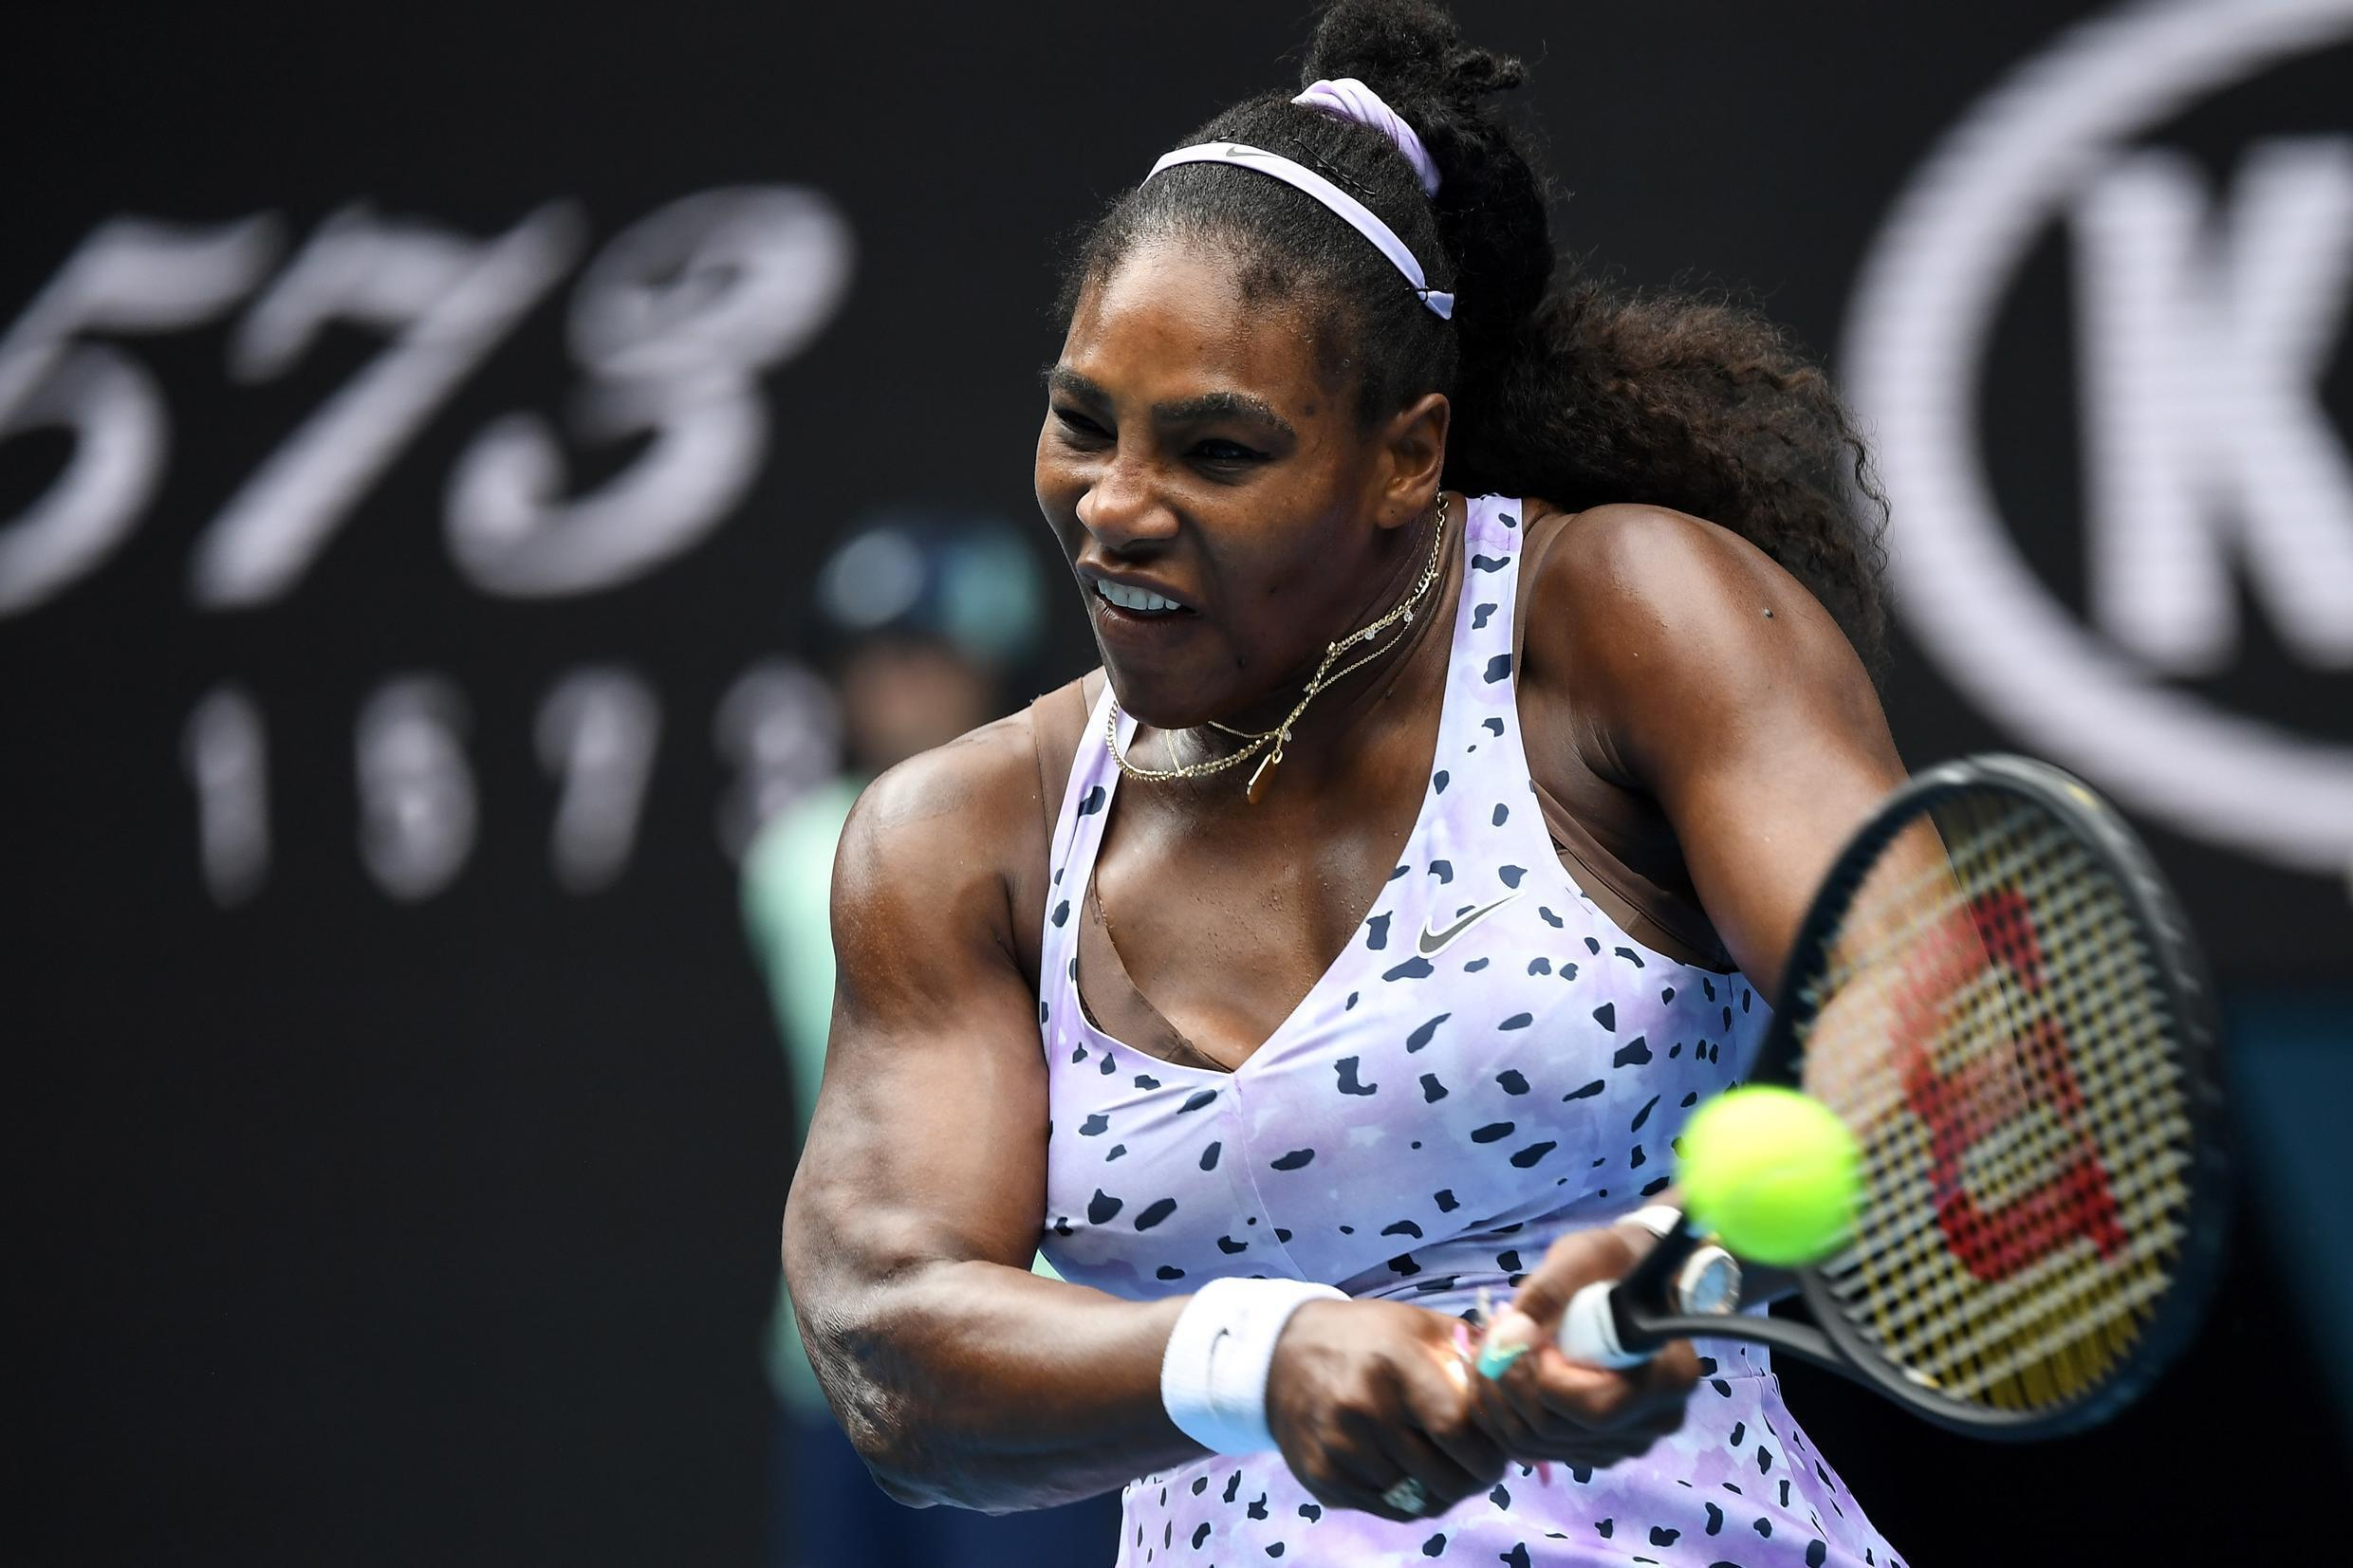 American Serena Williams seeks to win her 24th career Grand Slam title at the upcoming 2020 US Open to match Margaret Court's all-time record.